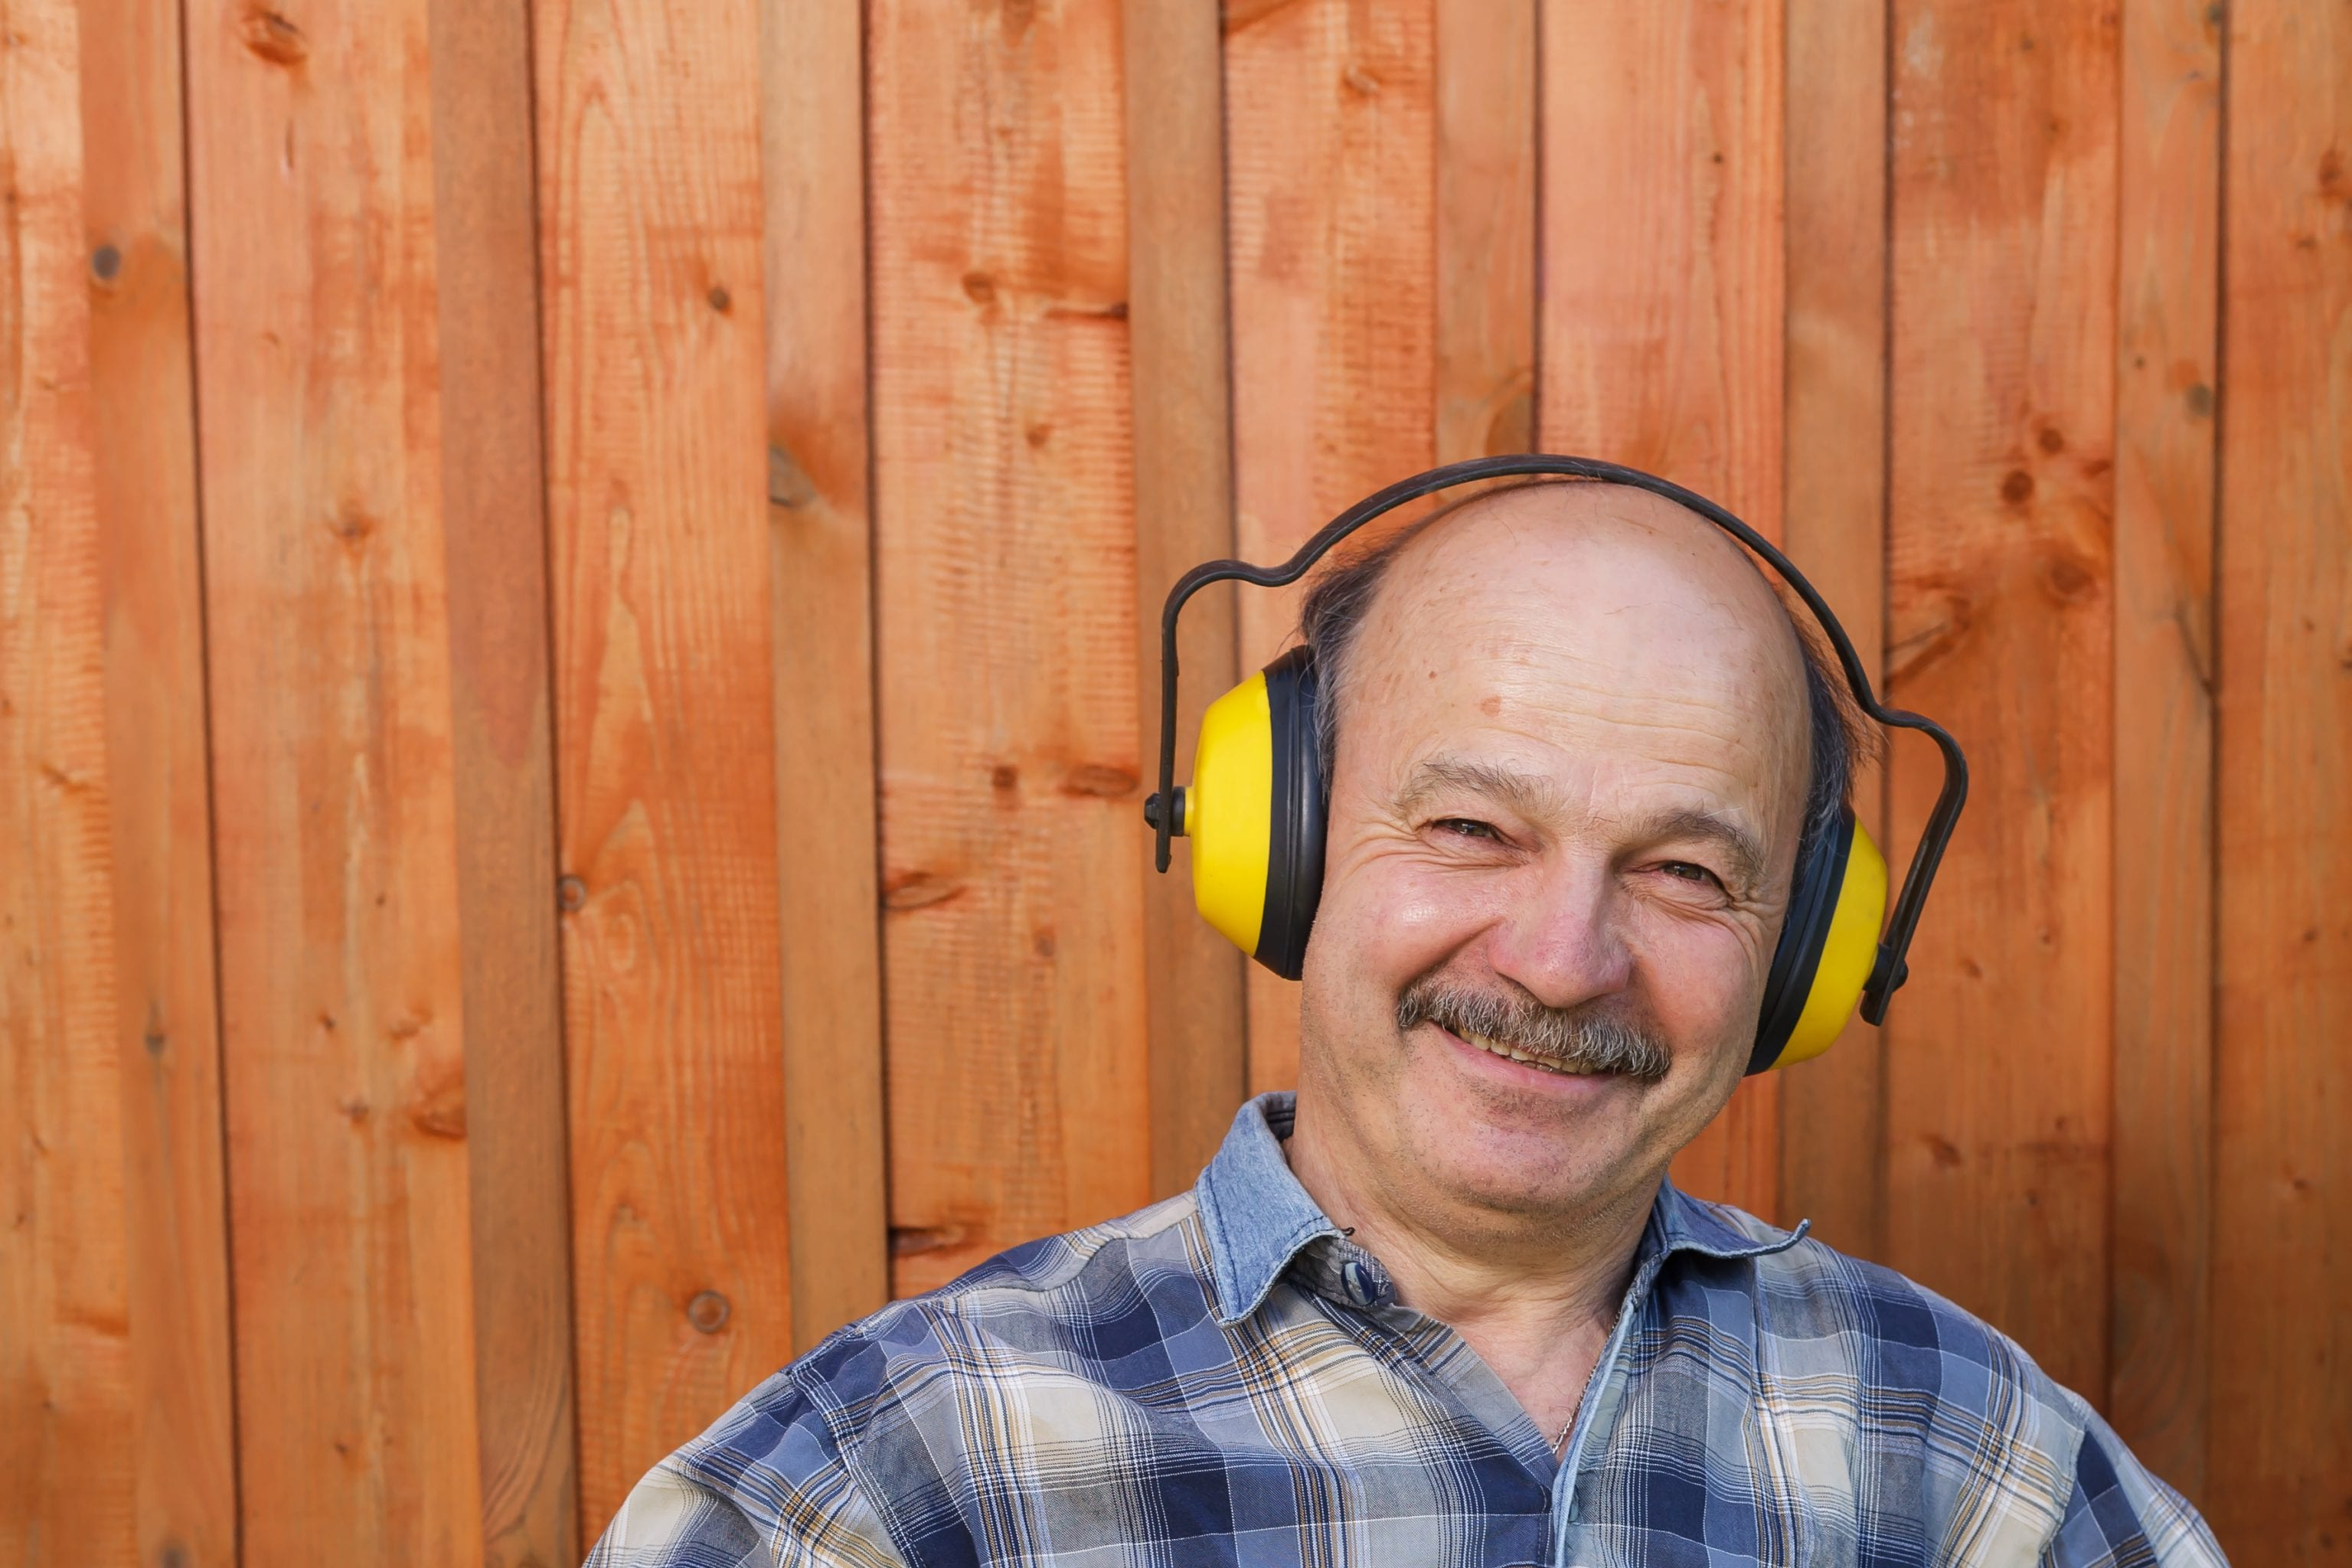 smiling man in plaid shirt wearing yellow over-the-head hearing protection device